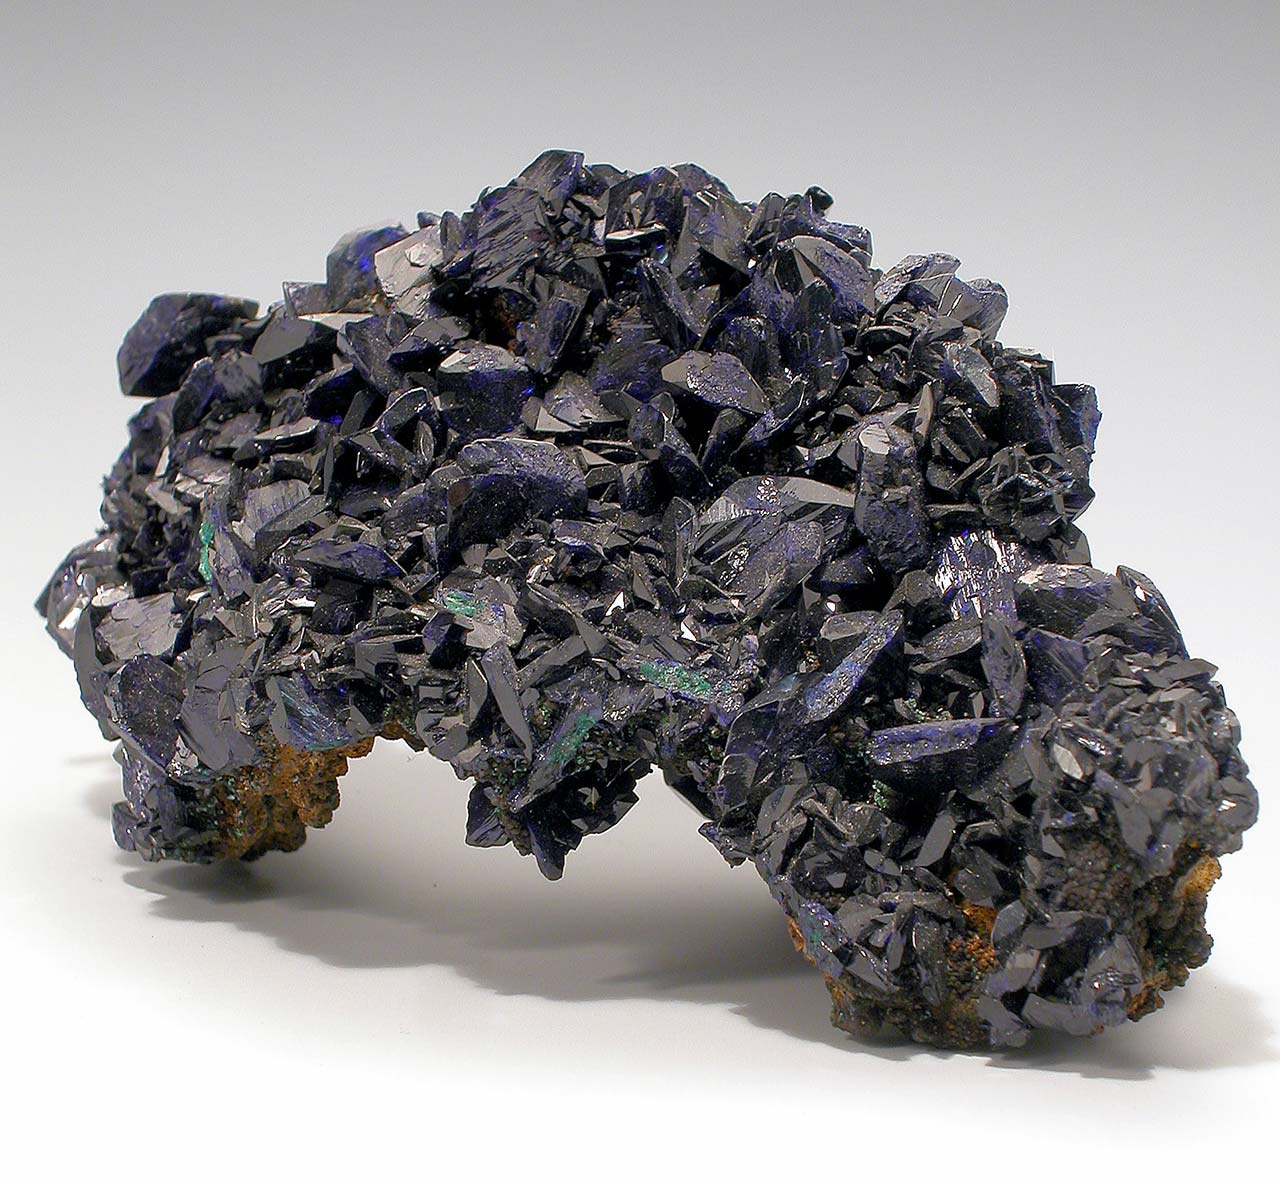 Azurite samplefrom the natural history collection ofHessisches Landesmuseum Darmstadt.